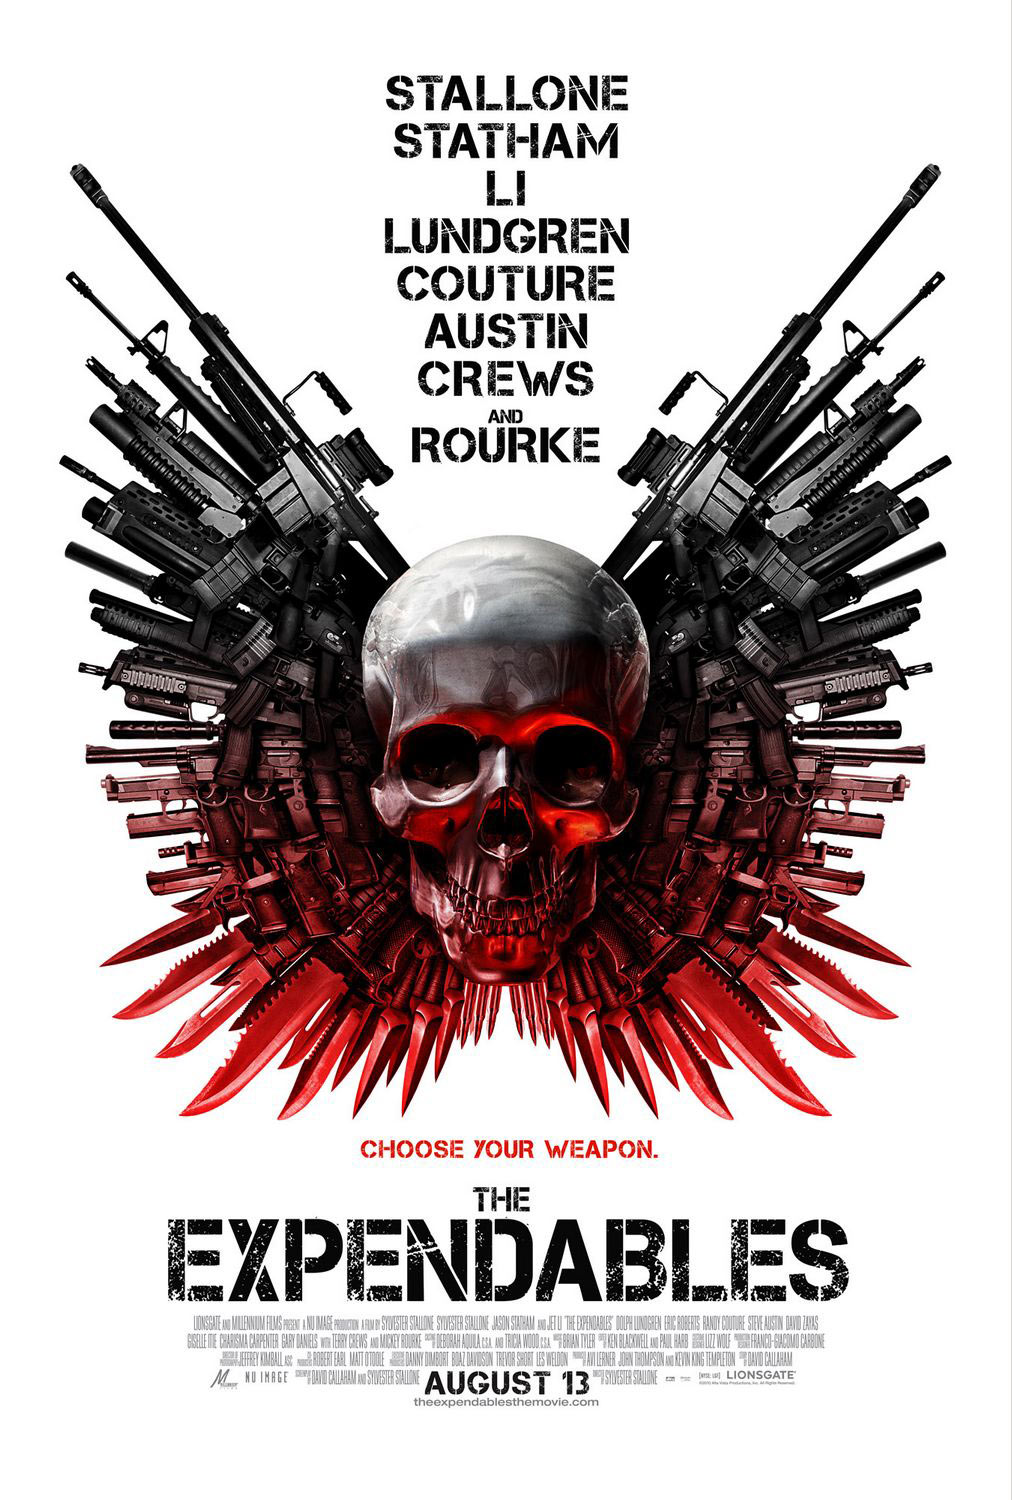 Hollywood Action Film The Expendables 3 Poster